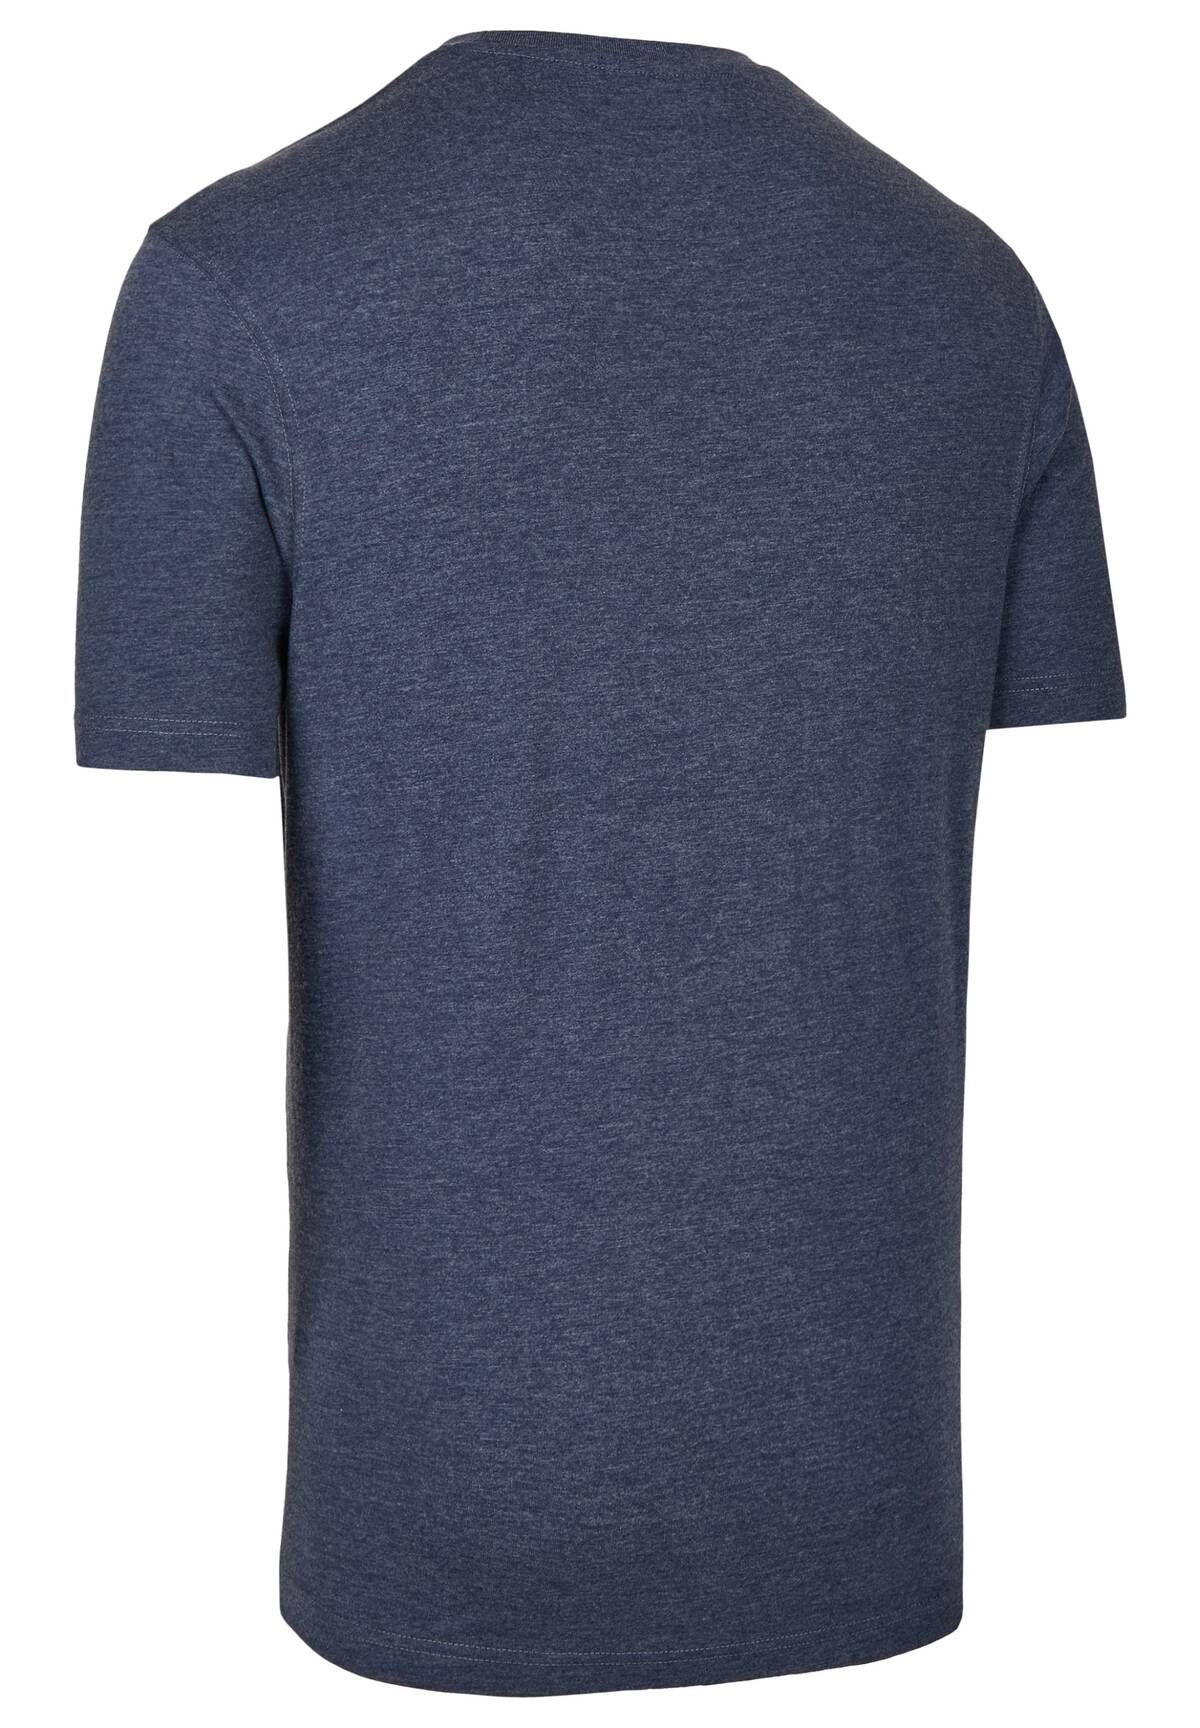 Doppelpack Modern Fit T-Shirt / CREW NECK TSHIRT